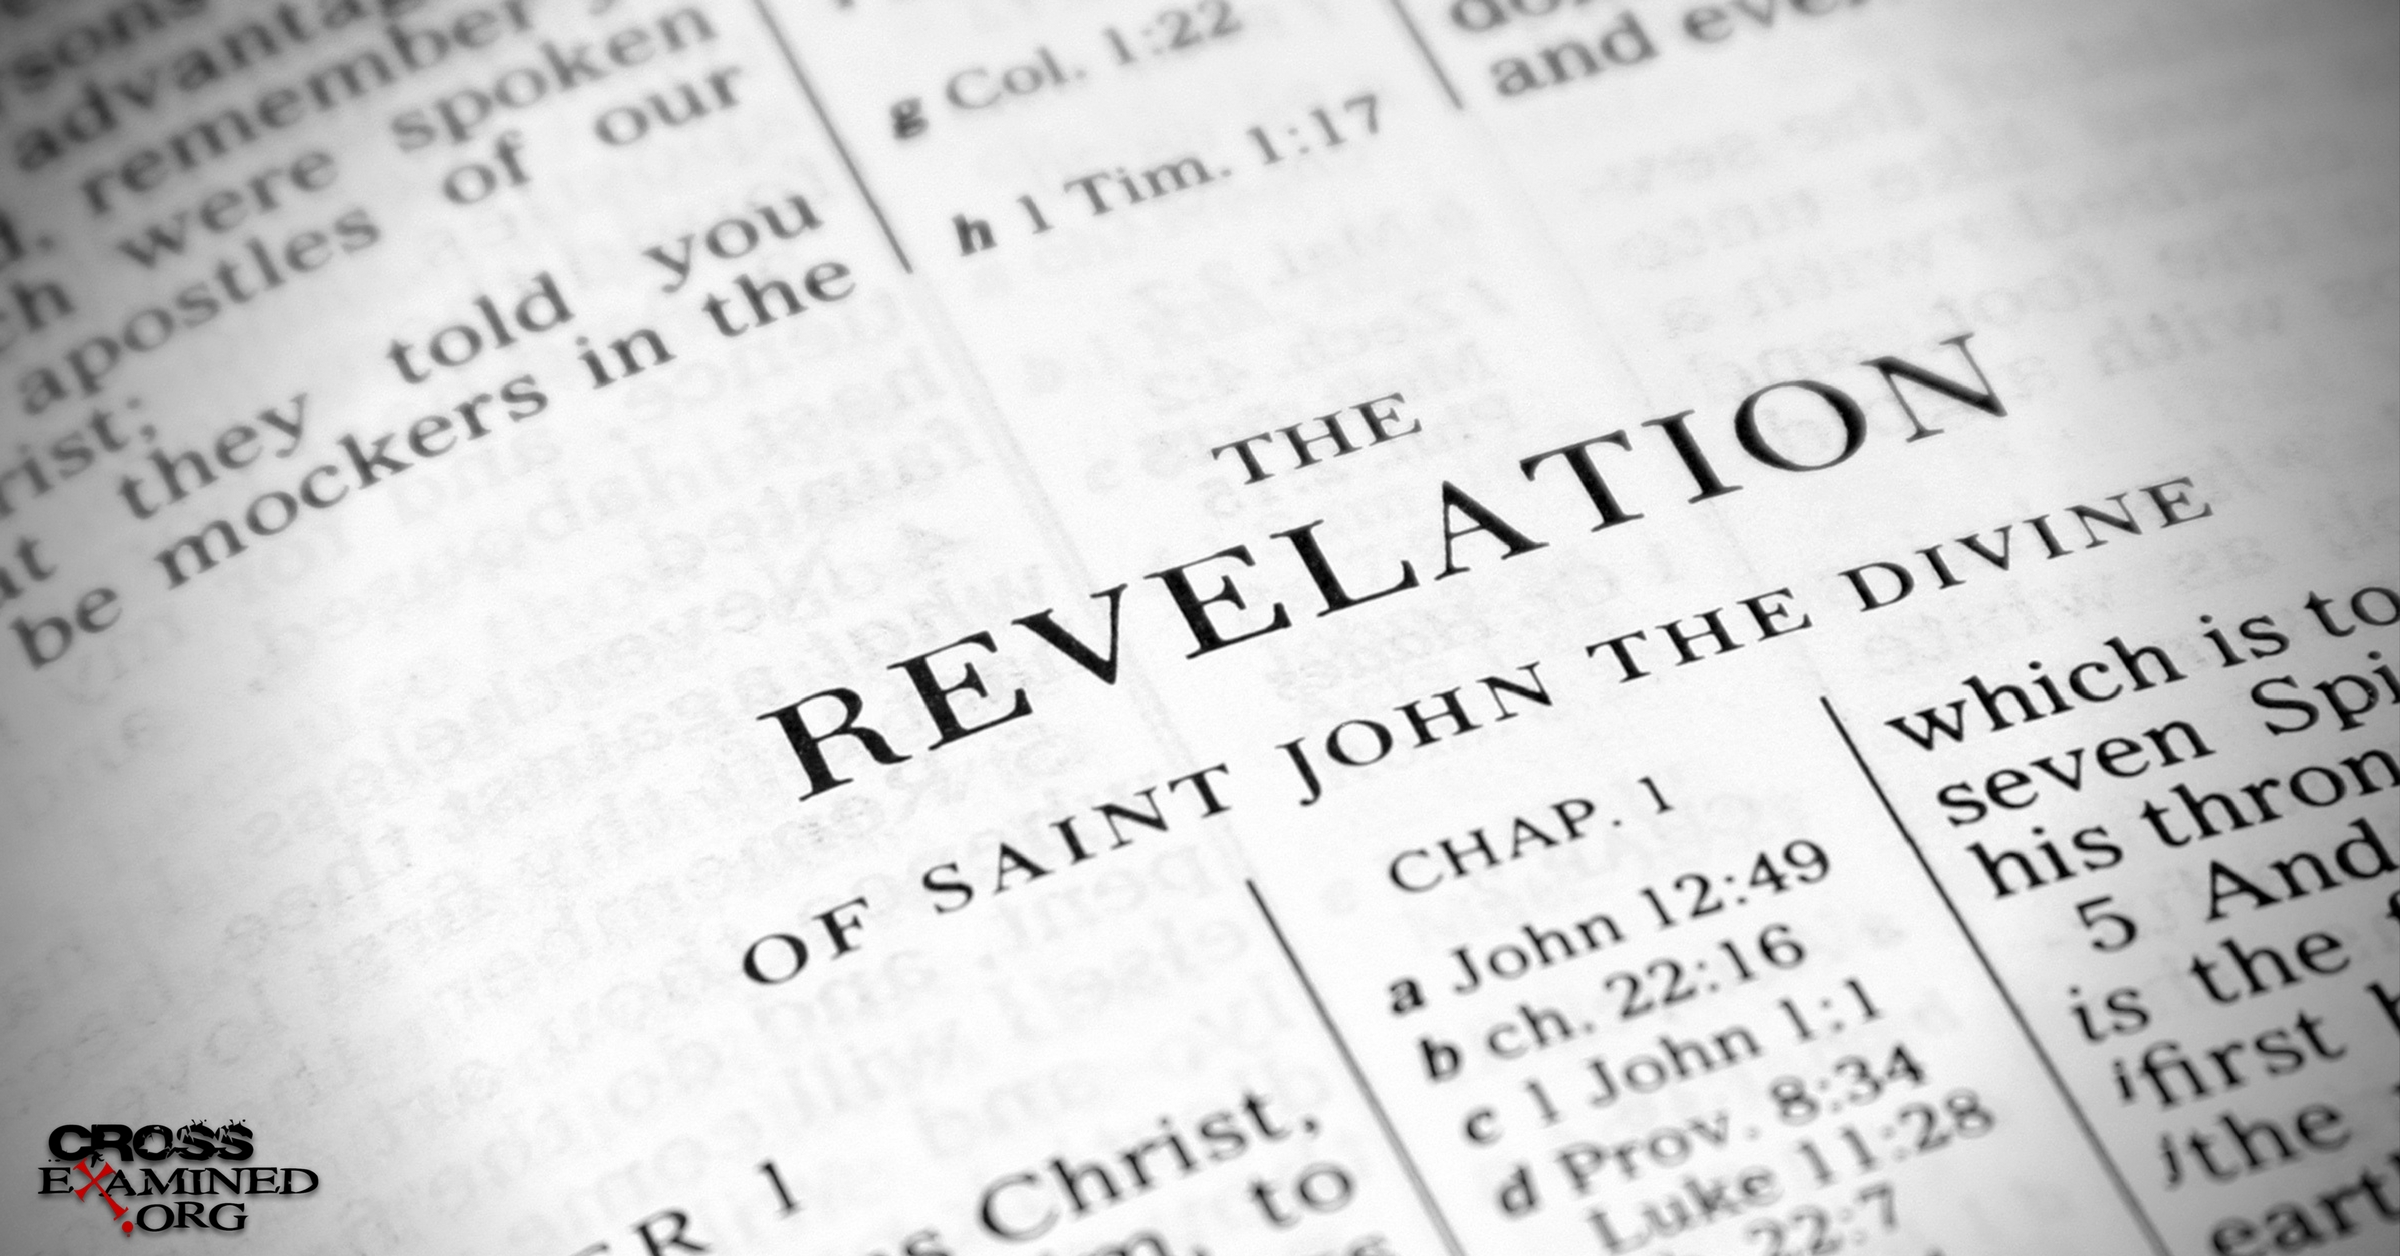 revelations in the bible essay Joseph smith's translation of the bible served as a catalyst for several revelations now canonized in the doctrine and covenants all things must be done in order d&c 28, 43.